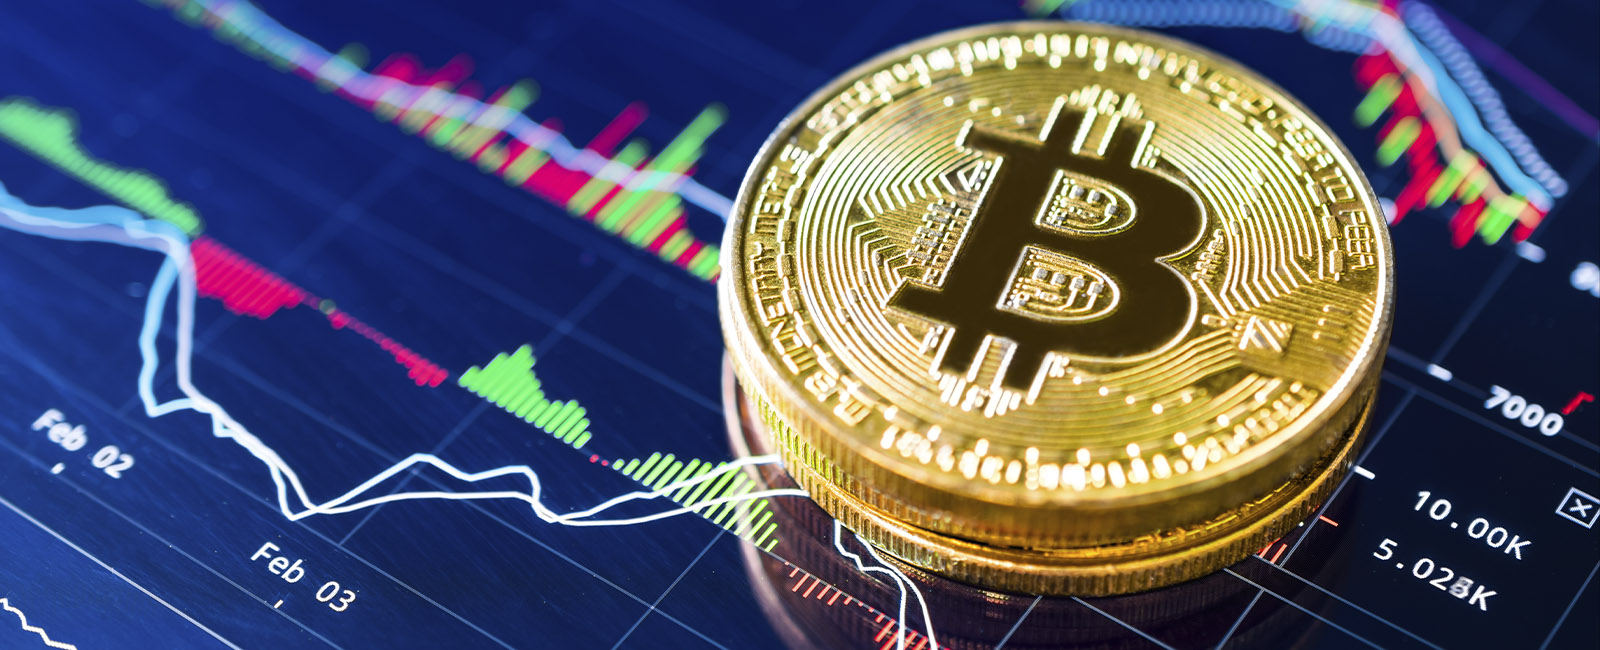 Prime Minister Gaston Browne made the announcement and expected the move to open new markets and attract applications from potential crypto-millionaires.